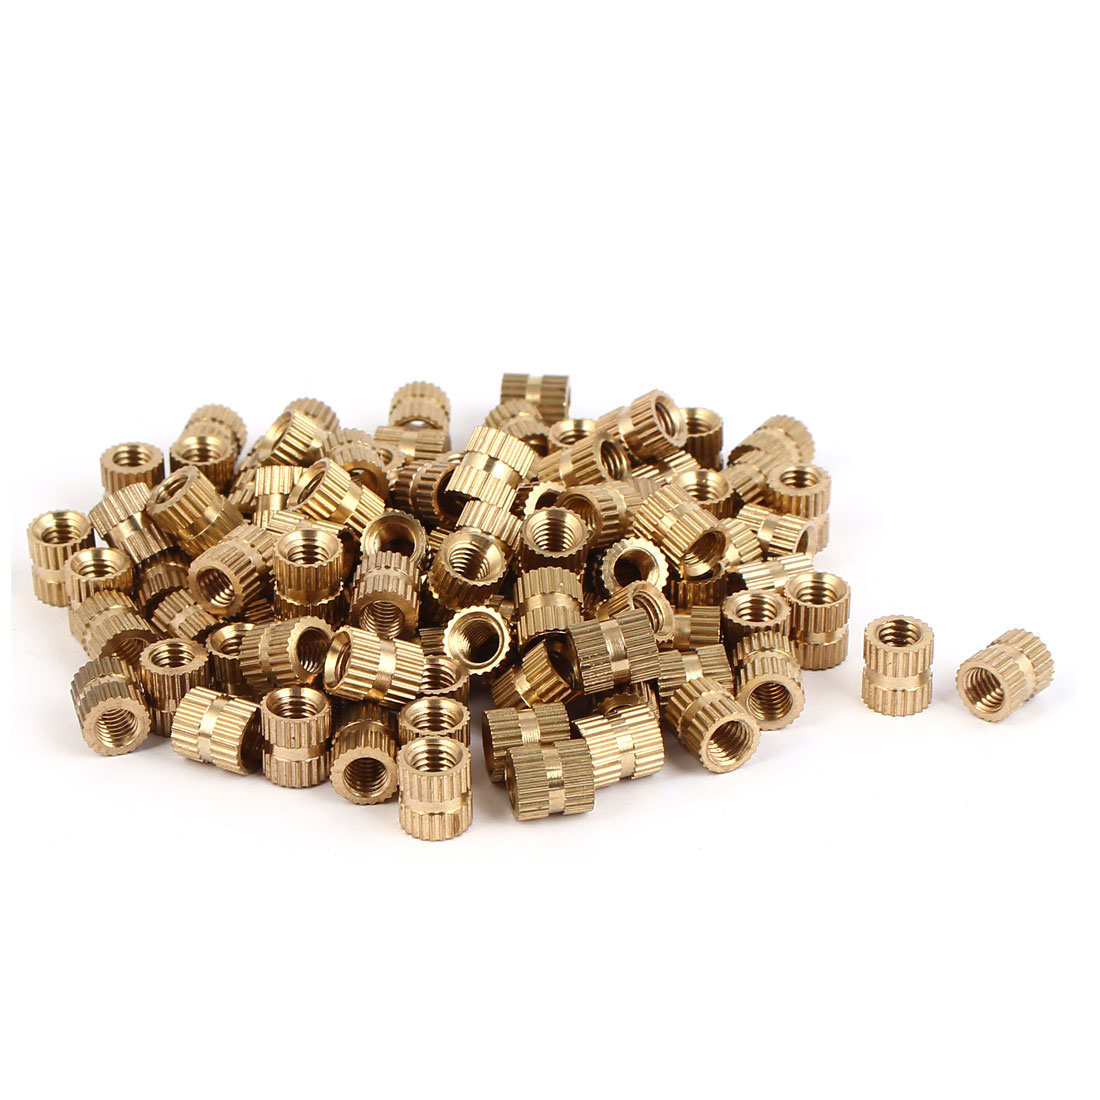 M5 x 8mm Female Thread Brass Knurled Threaded Round Insert Embedded Nuts 100PCS